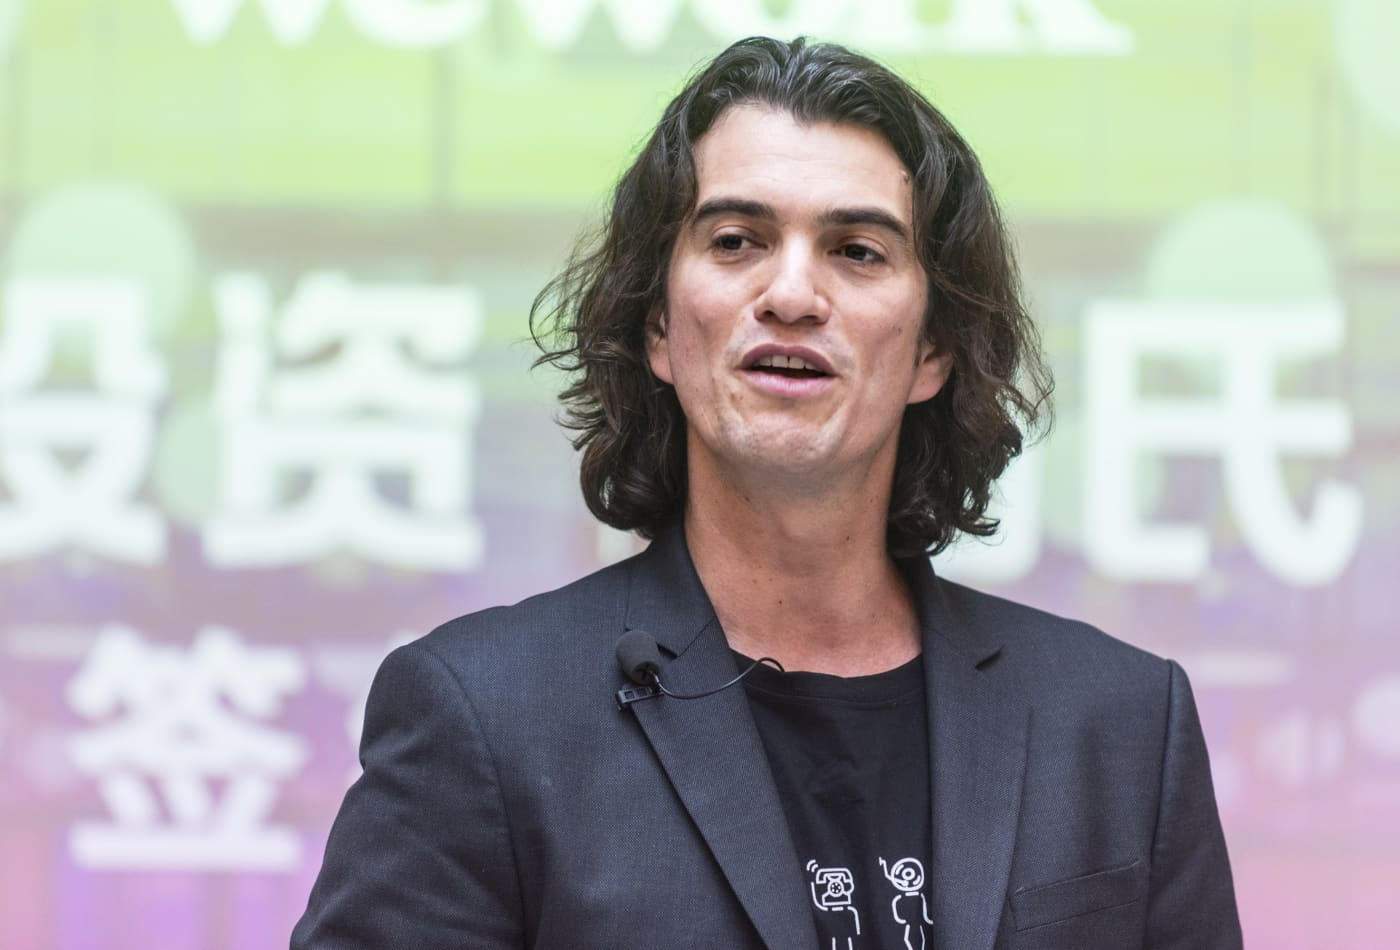 WeWork's valuation could fall to below $15 billion in IPO, down from $47 billion private valuation